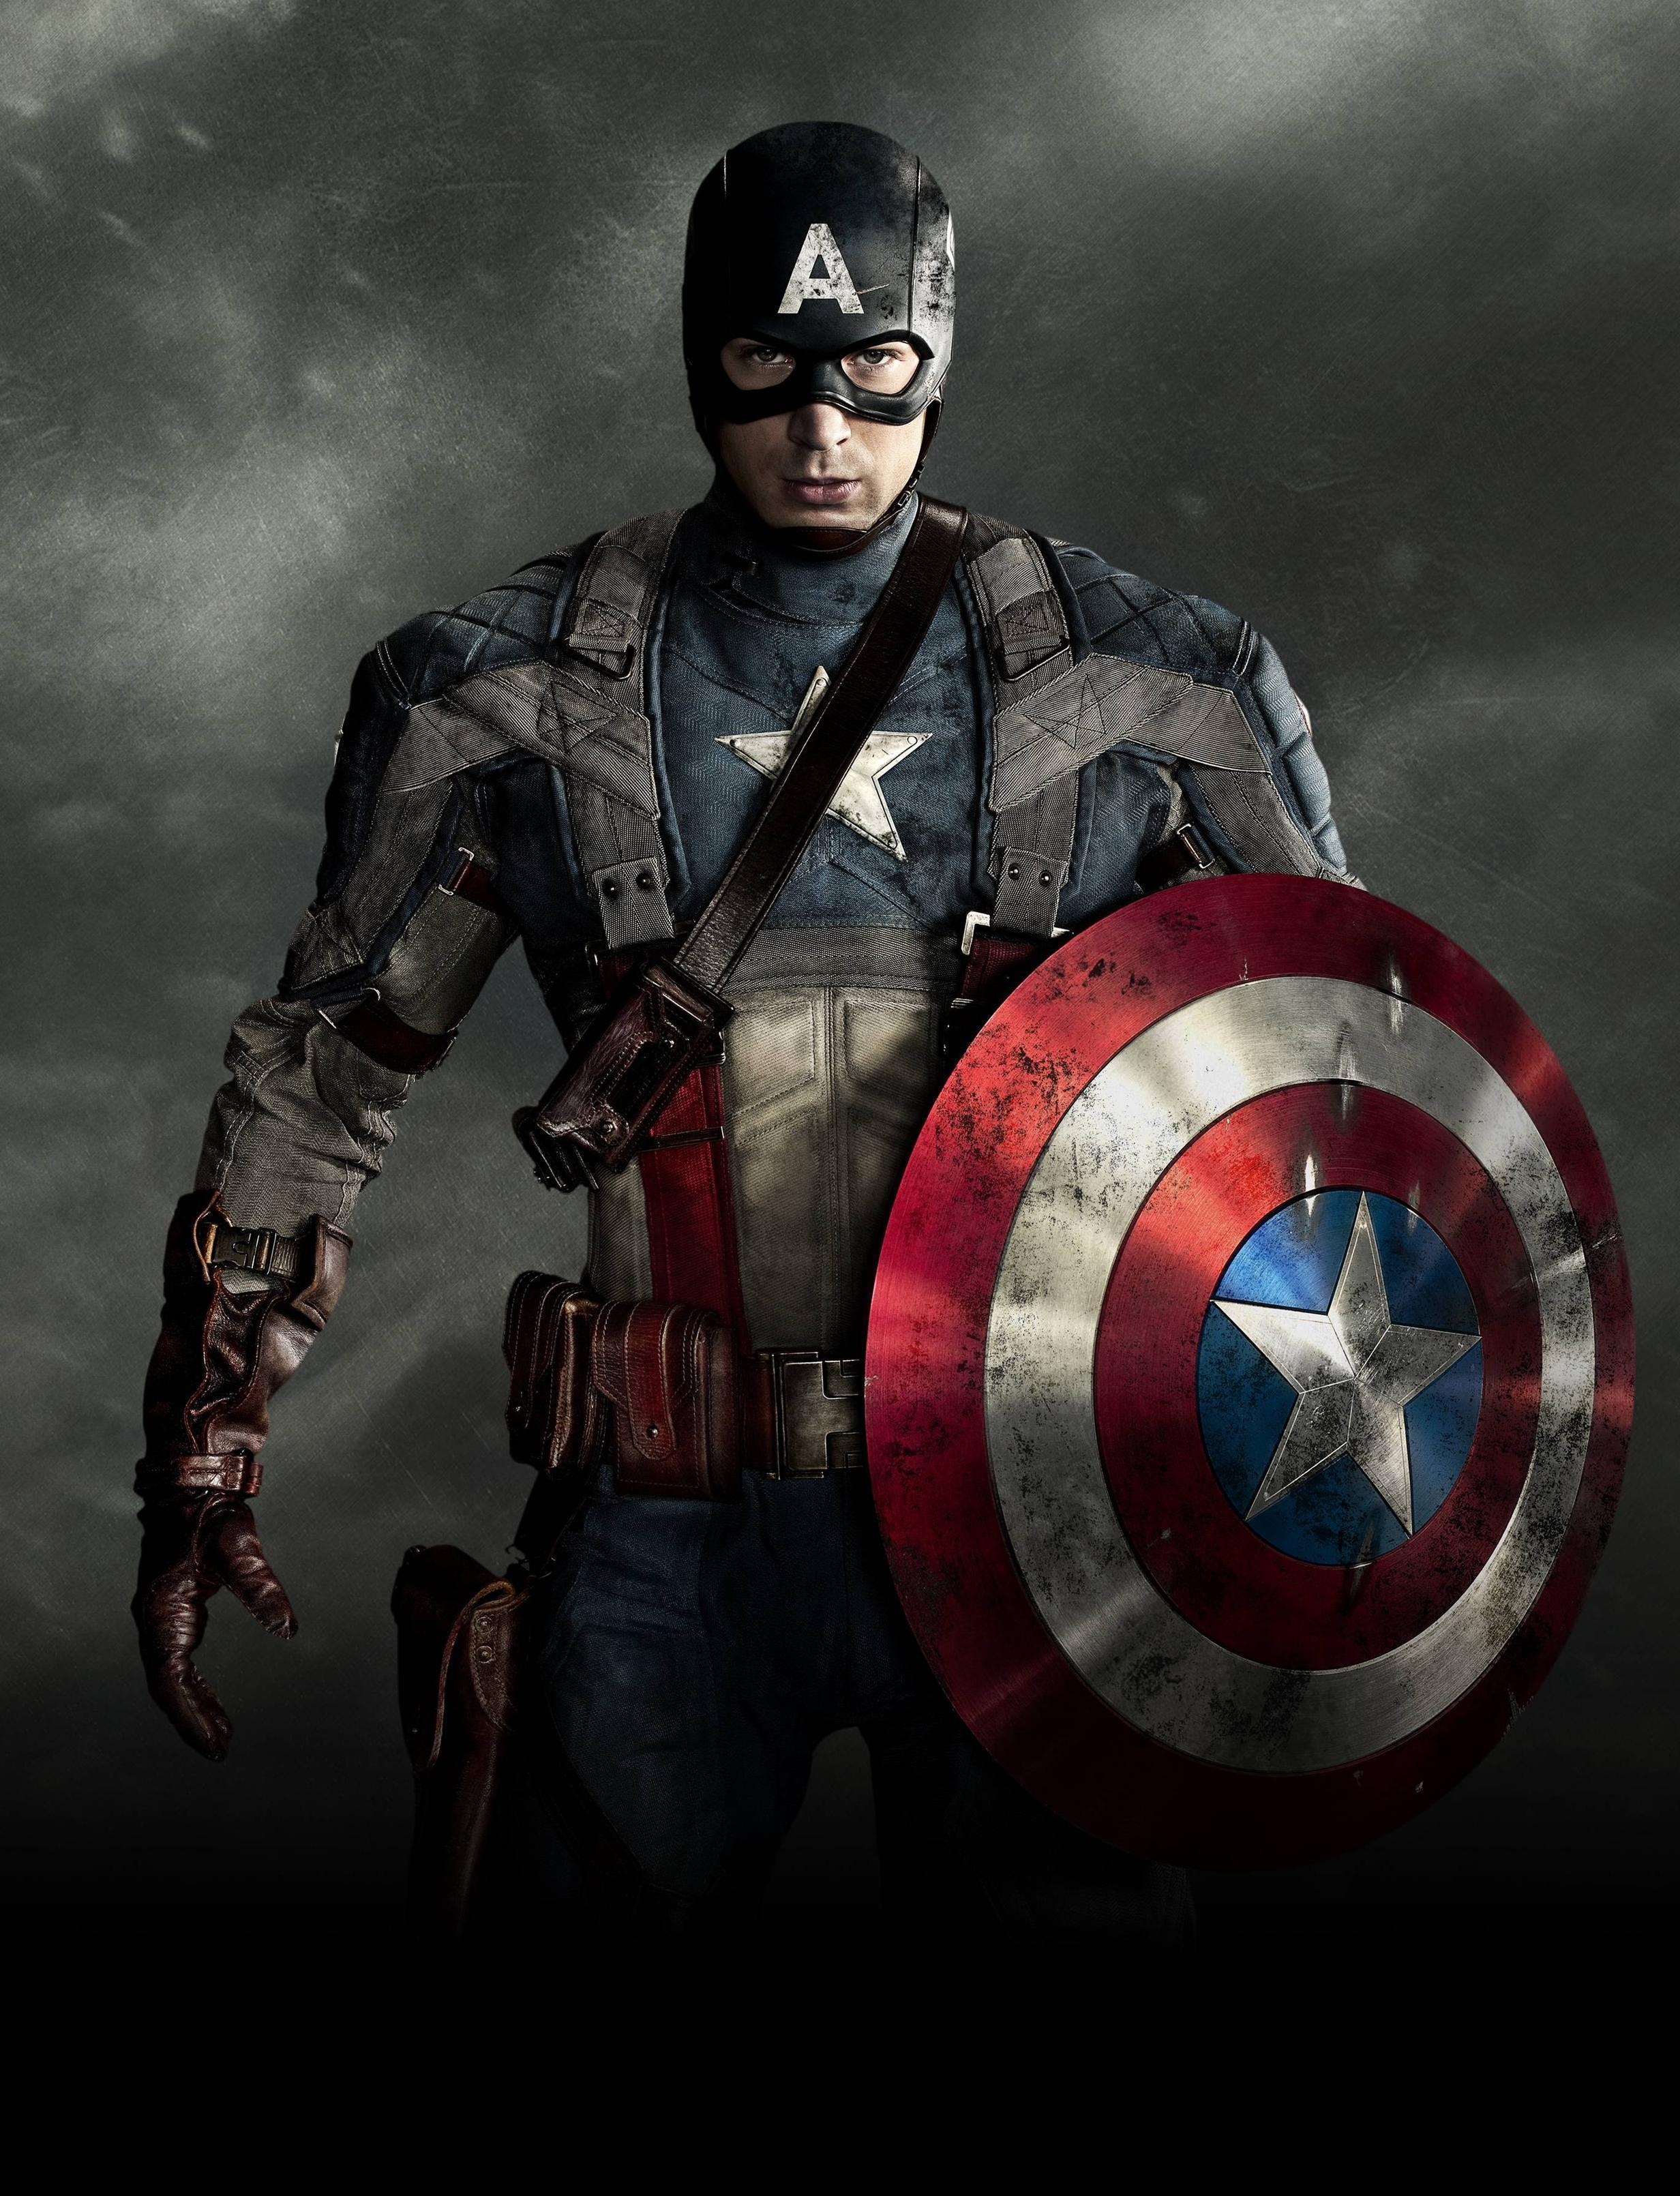 Amazing 46 Wallpapers of Captain America, Top Captain America .